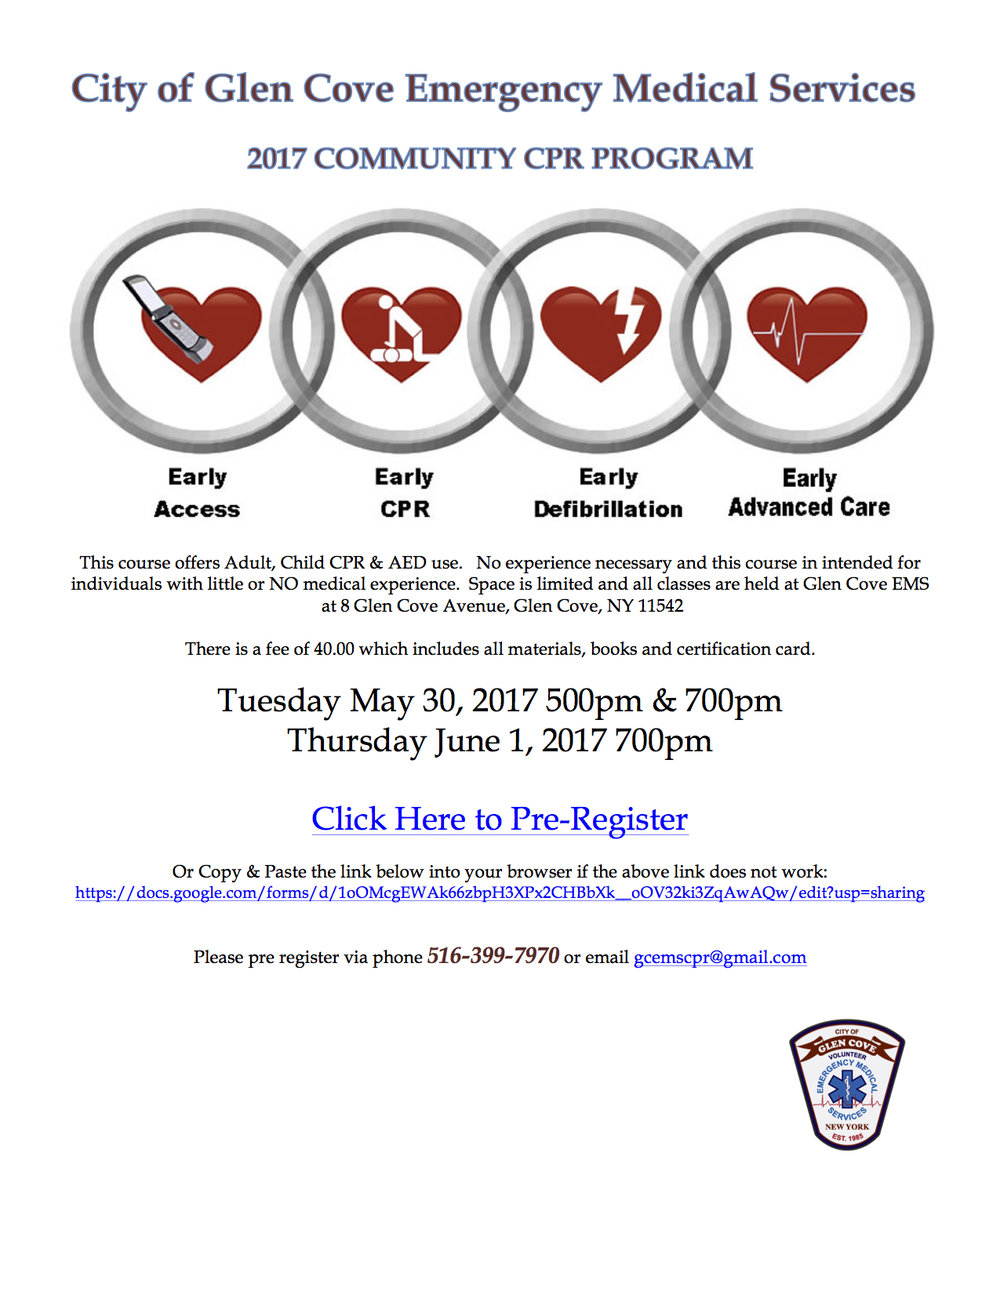 2017 GCEMS Community CPR